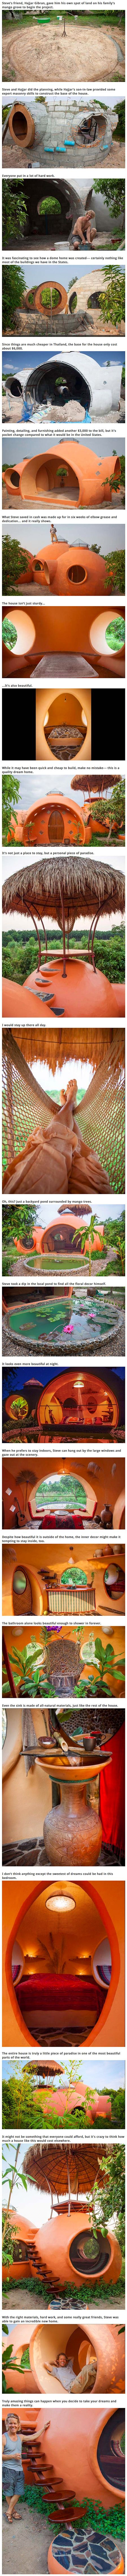 Geek Turns Mound of Dirt Into an Awesome Pod-Shaped Home for just $9,000…: